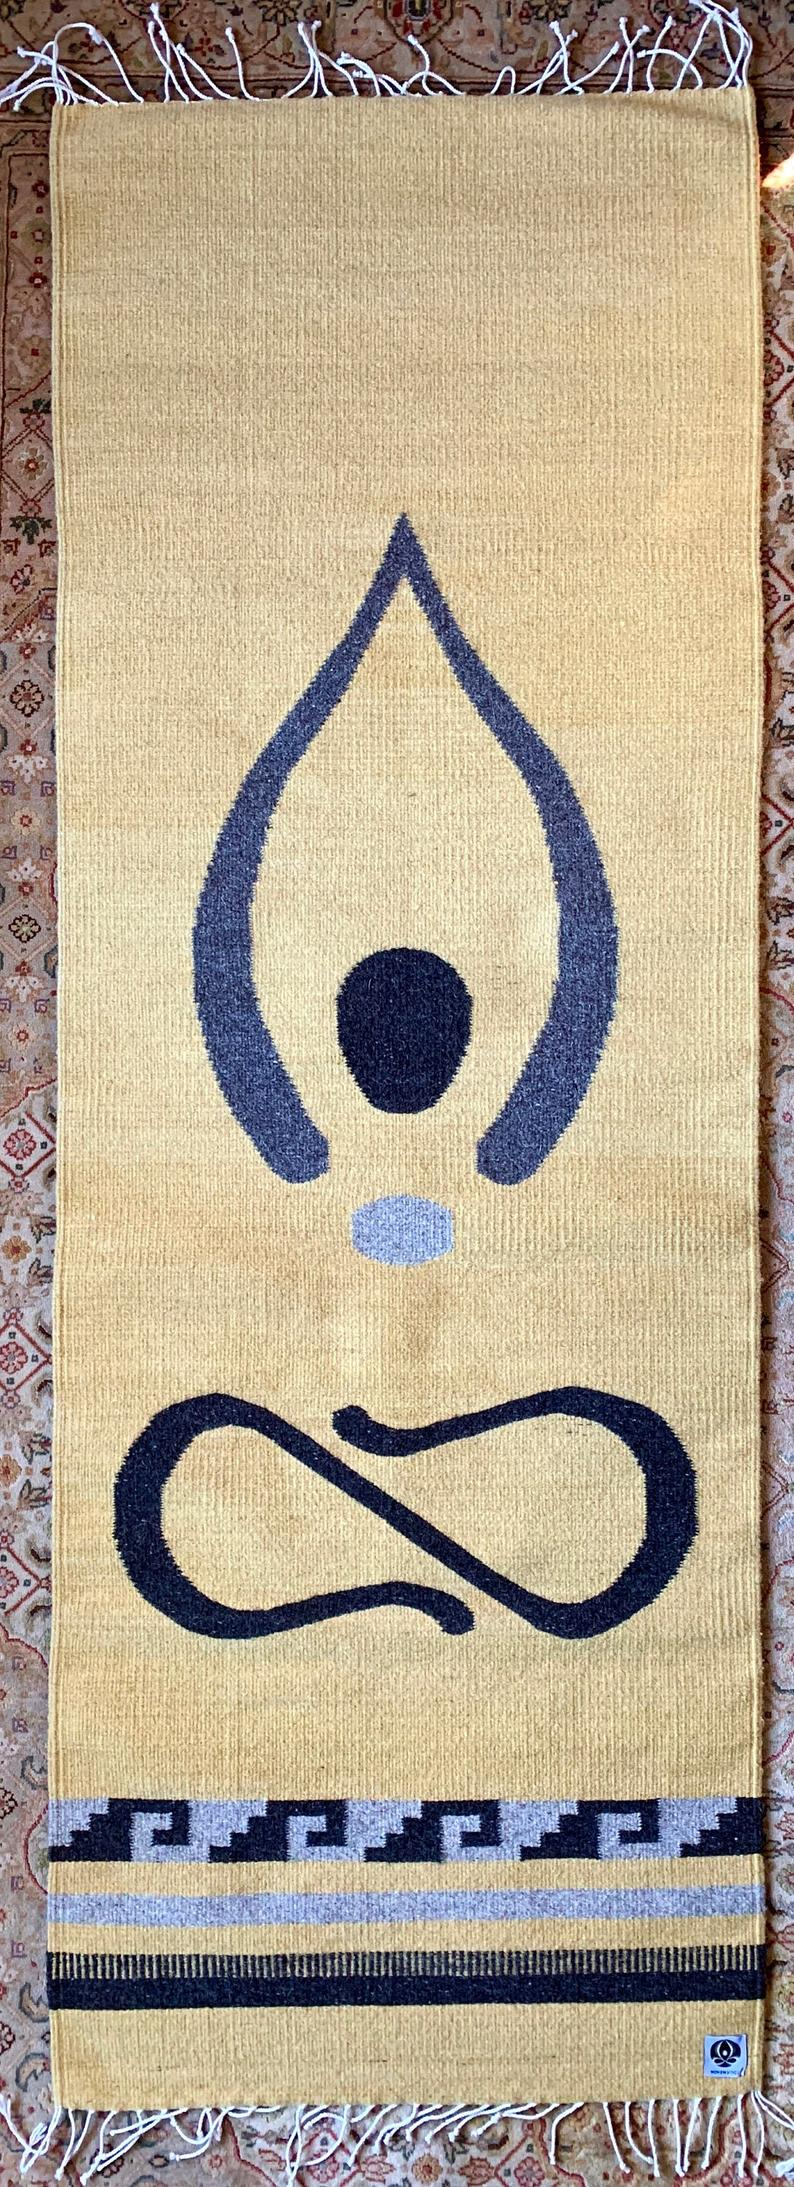 Handwoven, hand dyed wool mat.  May be used on top of your yoga mat, as a runner in your home, or as a beautiful wall hanging.